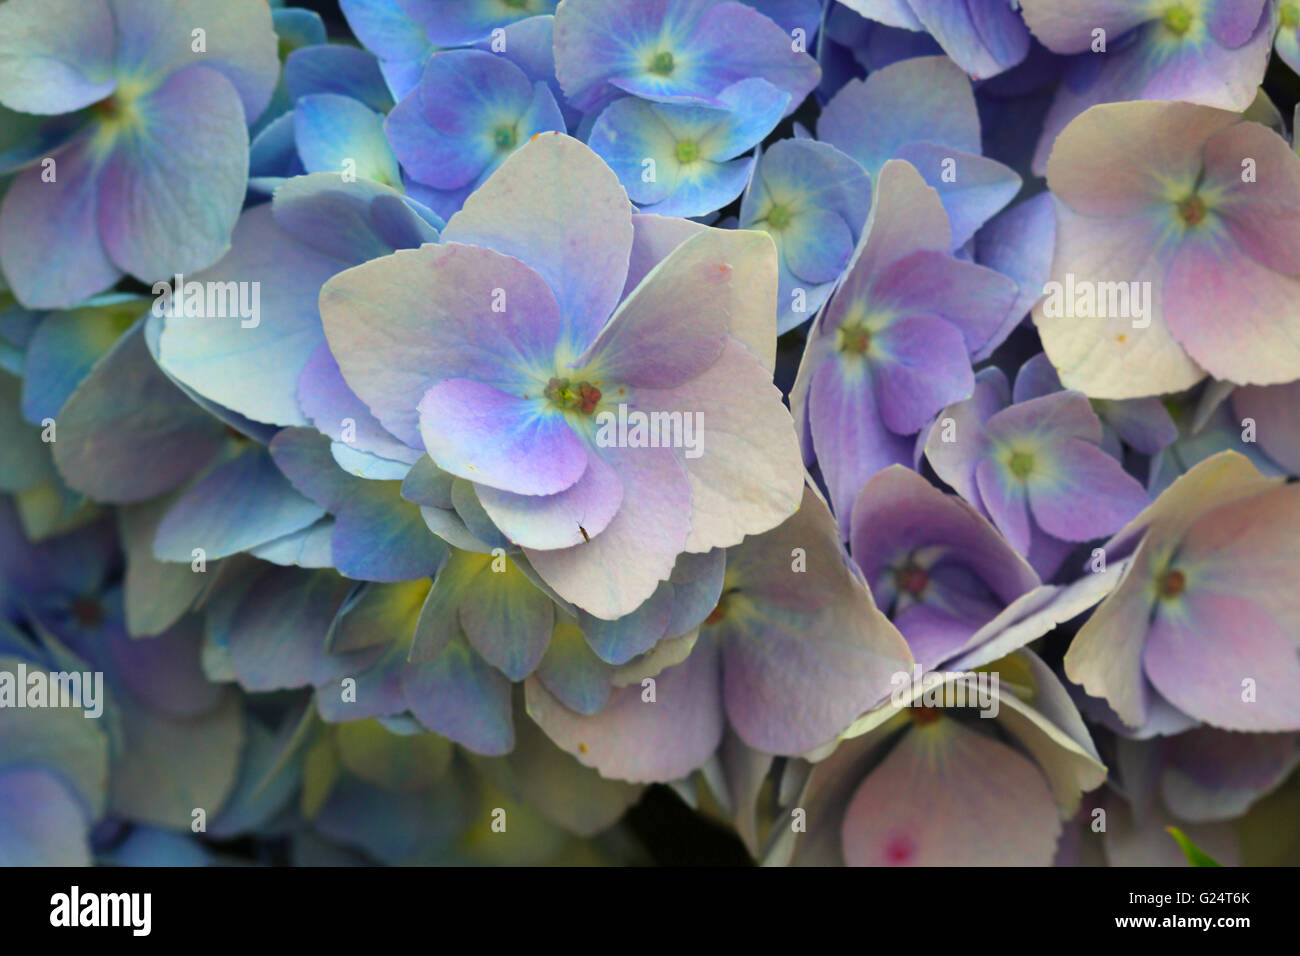 Hydrangeas are extremely vigorous, long-lived shrubs that offer varied and extravagant blooms throughout summer - Stock Image